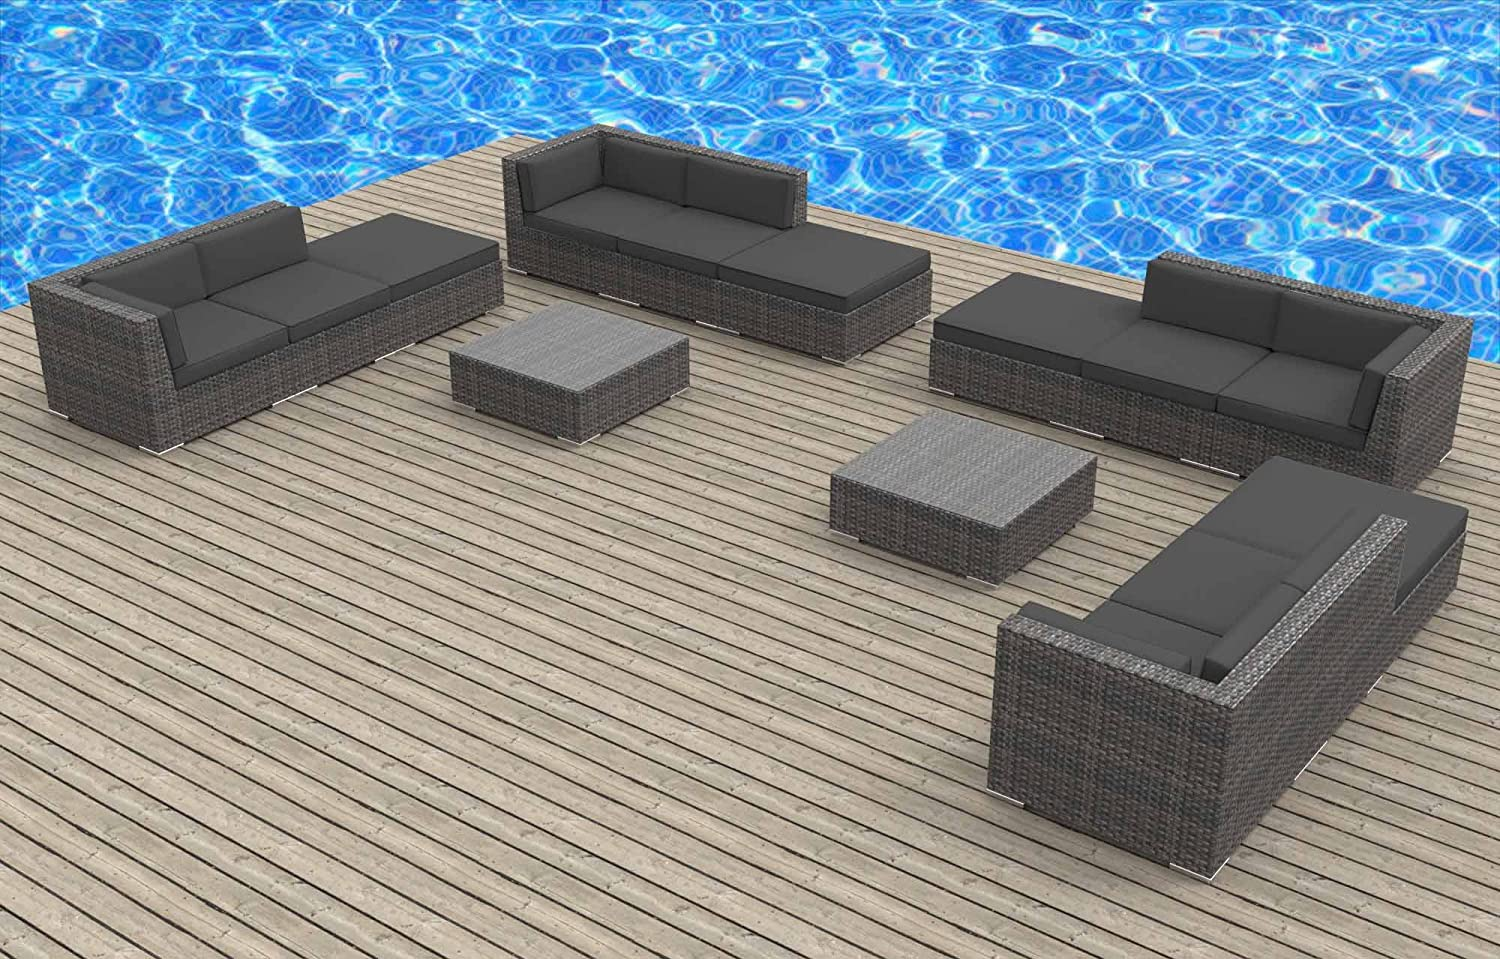 www.urbanfurnishing.net Urban Furnishing - KEY WEST 14pc Modern Outdoor Backyard Wicker Patio Furniture Sofa Sectional Couch Set - Charcoal at Sears.com